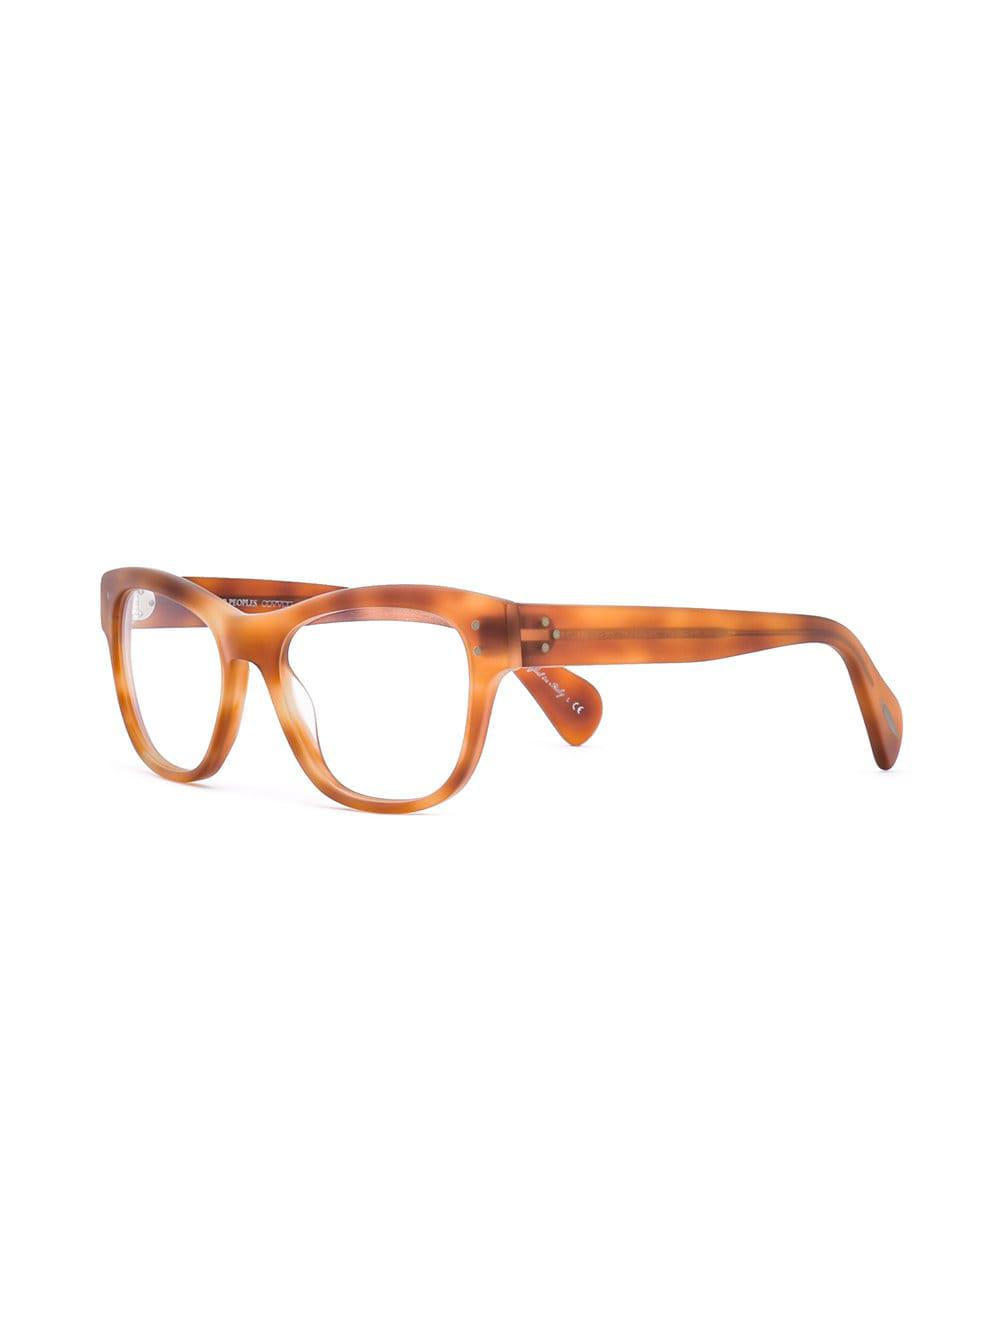 b4965c0eafc Oliver Peoples Parsons Glasses in Yellow - Lyst